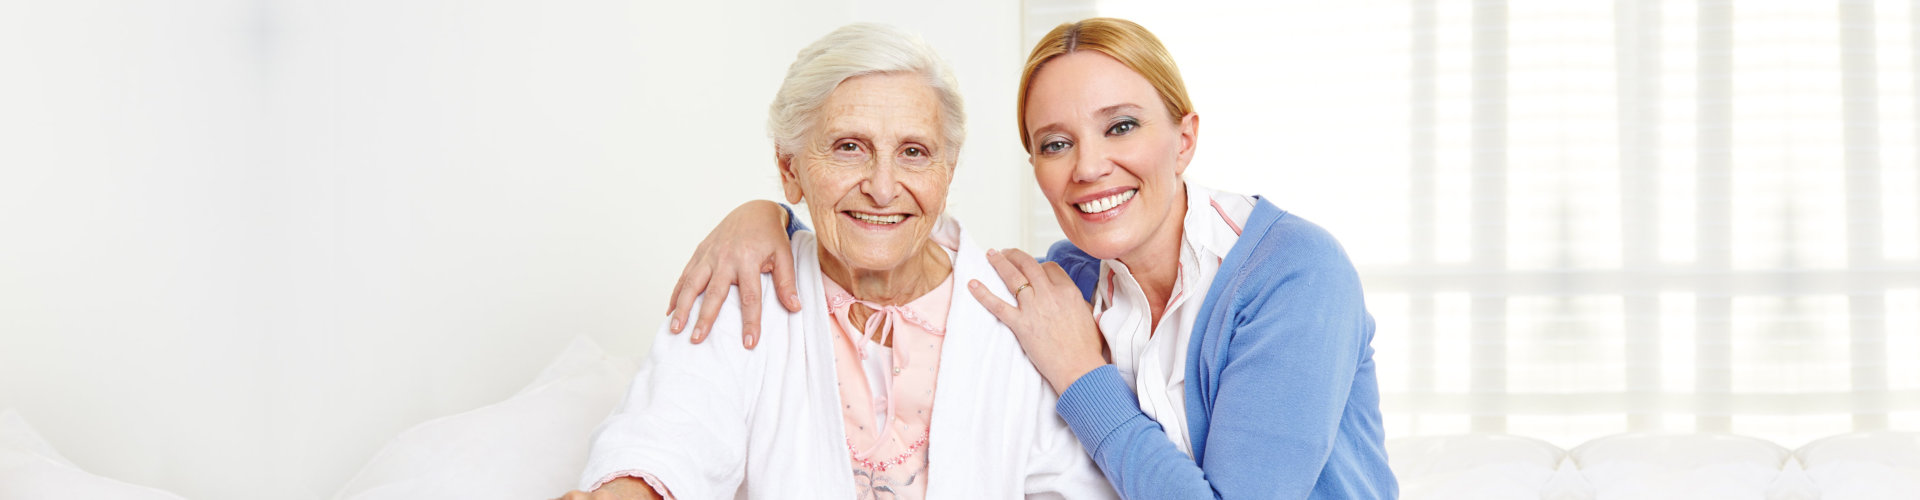 smiling caregiver and her old woman patient